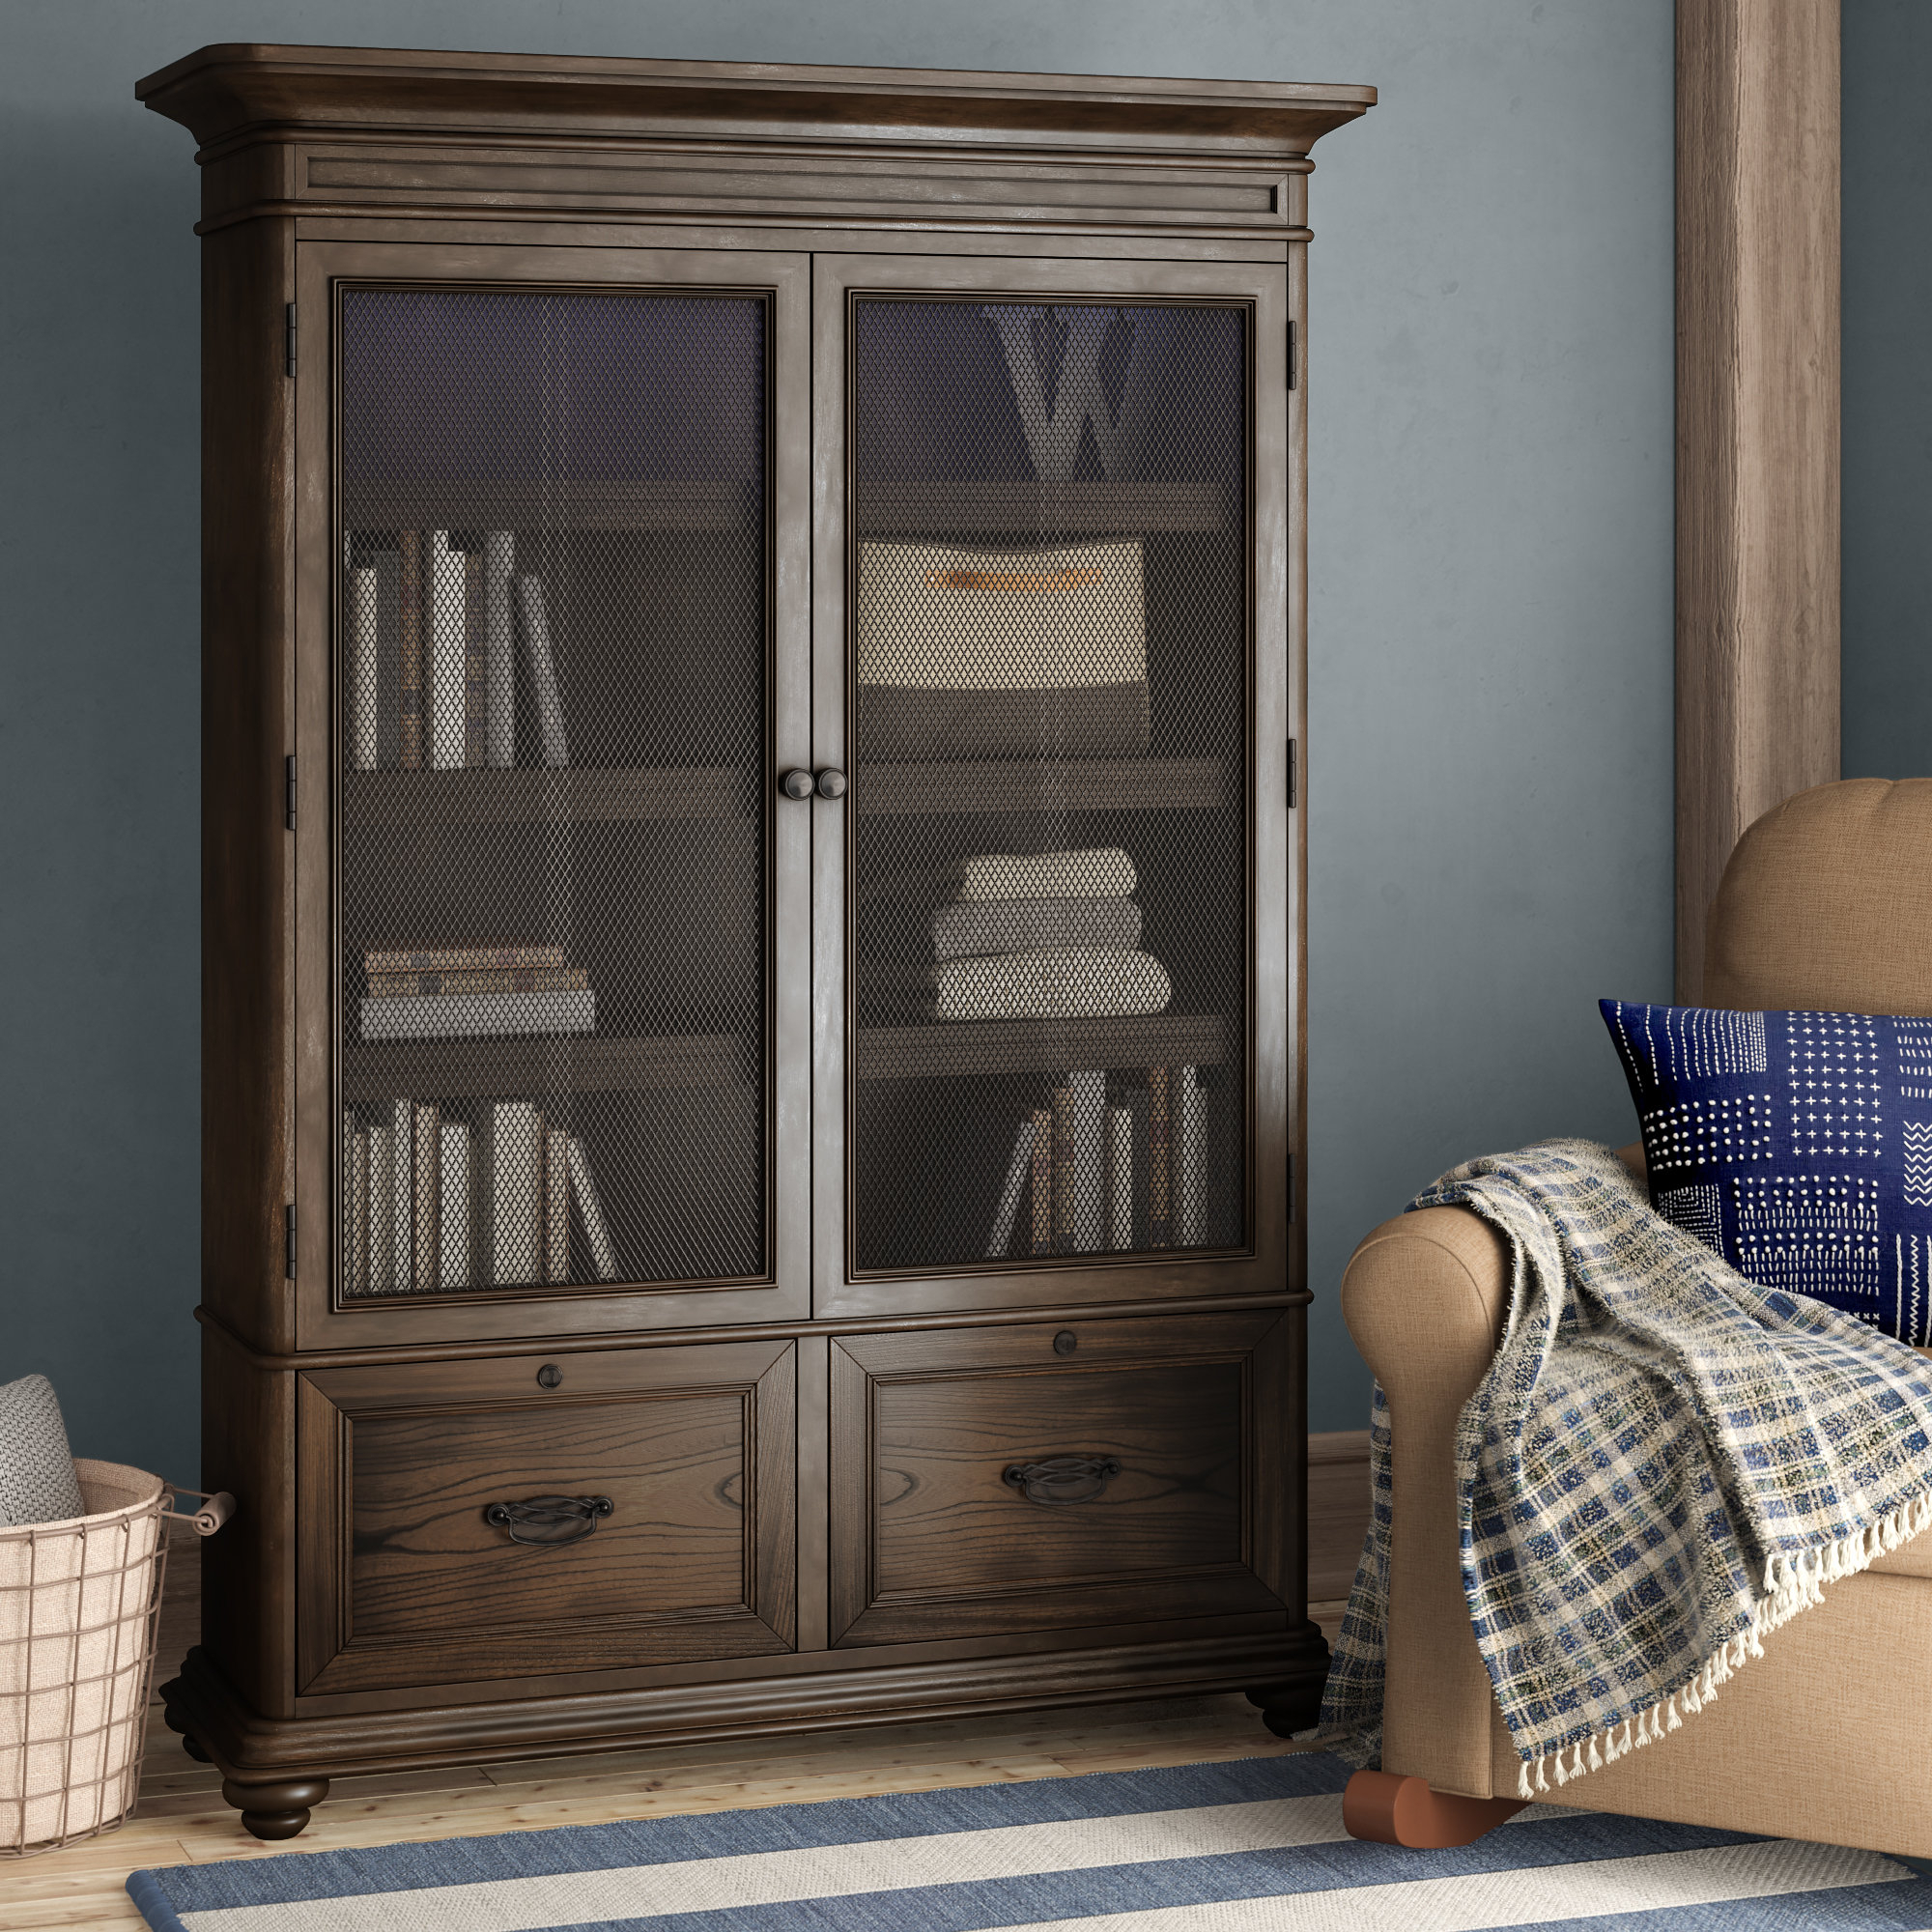 Westgrove Standard Bookcase With Favorite Tami Standard Bookcases (View 5 of 20)